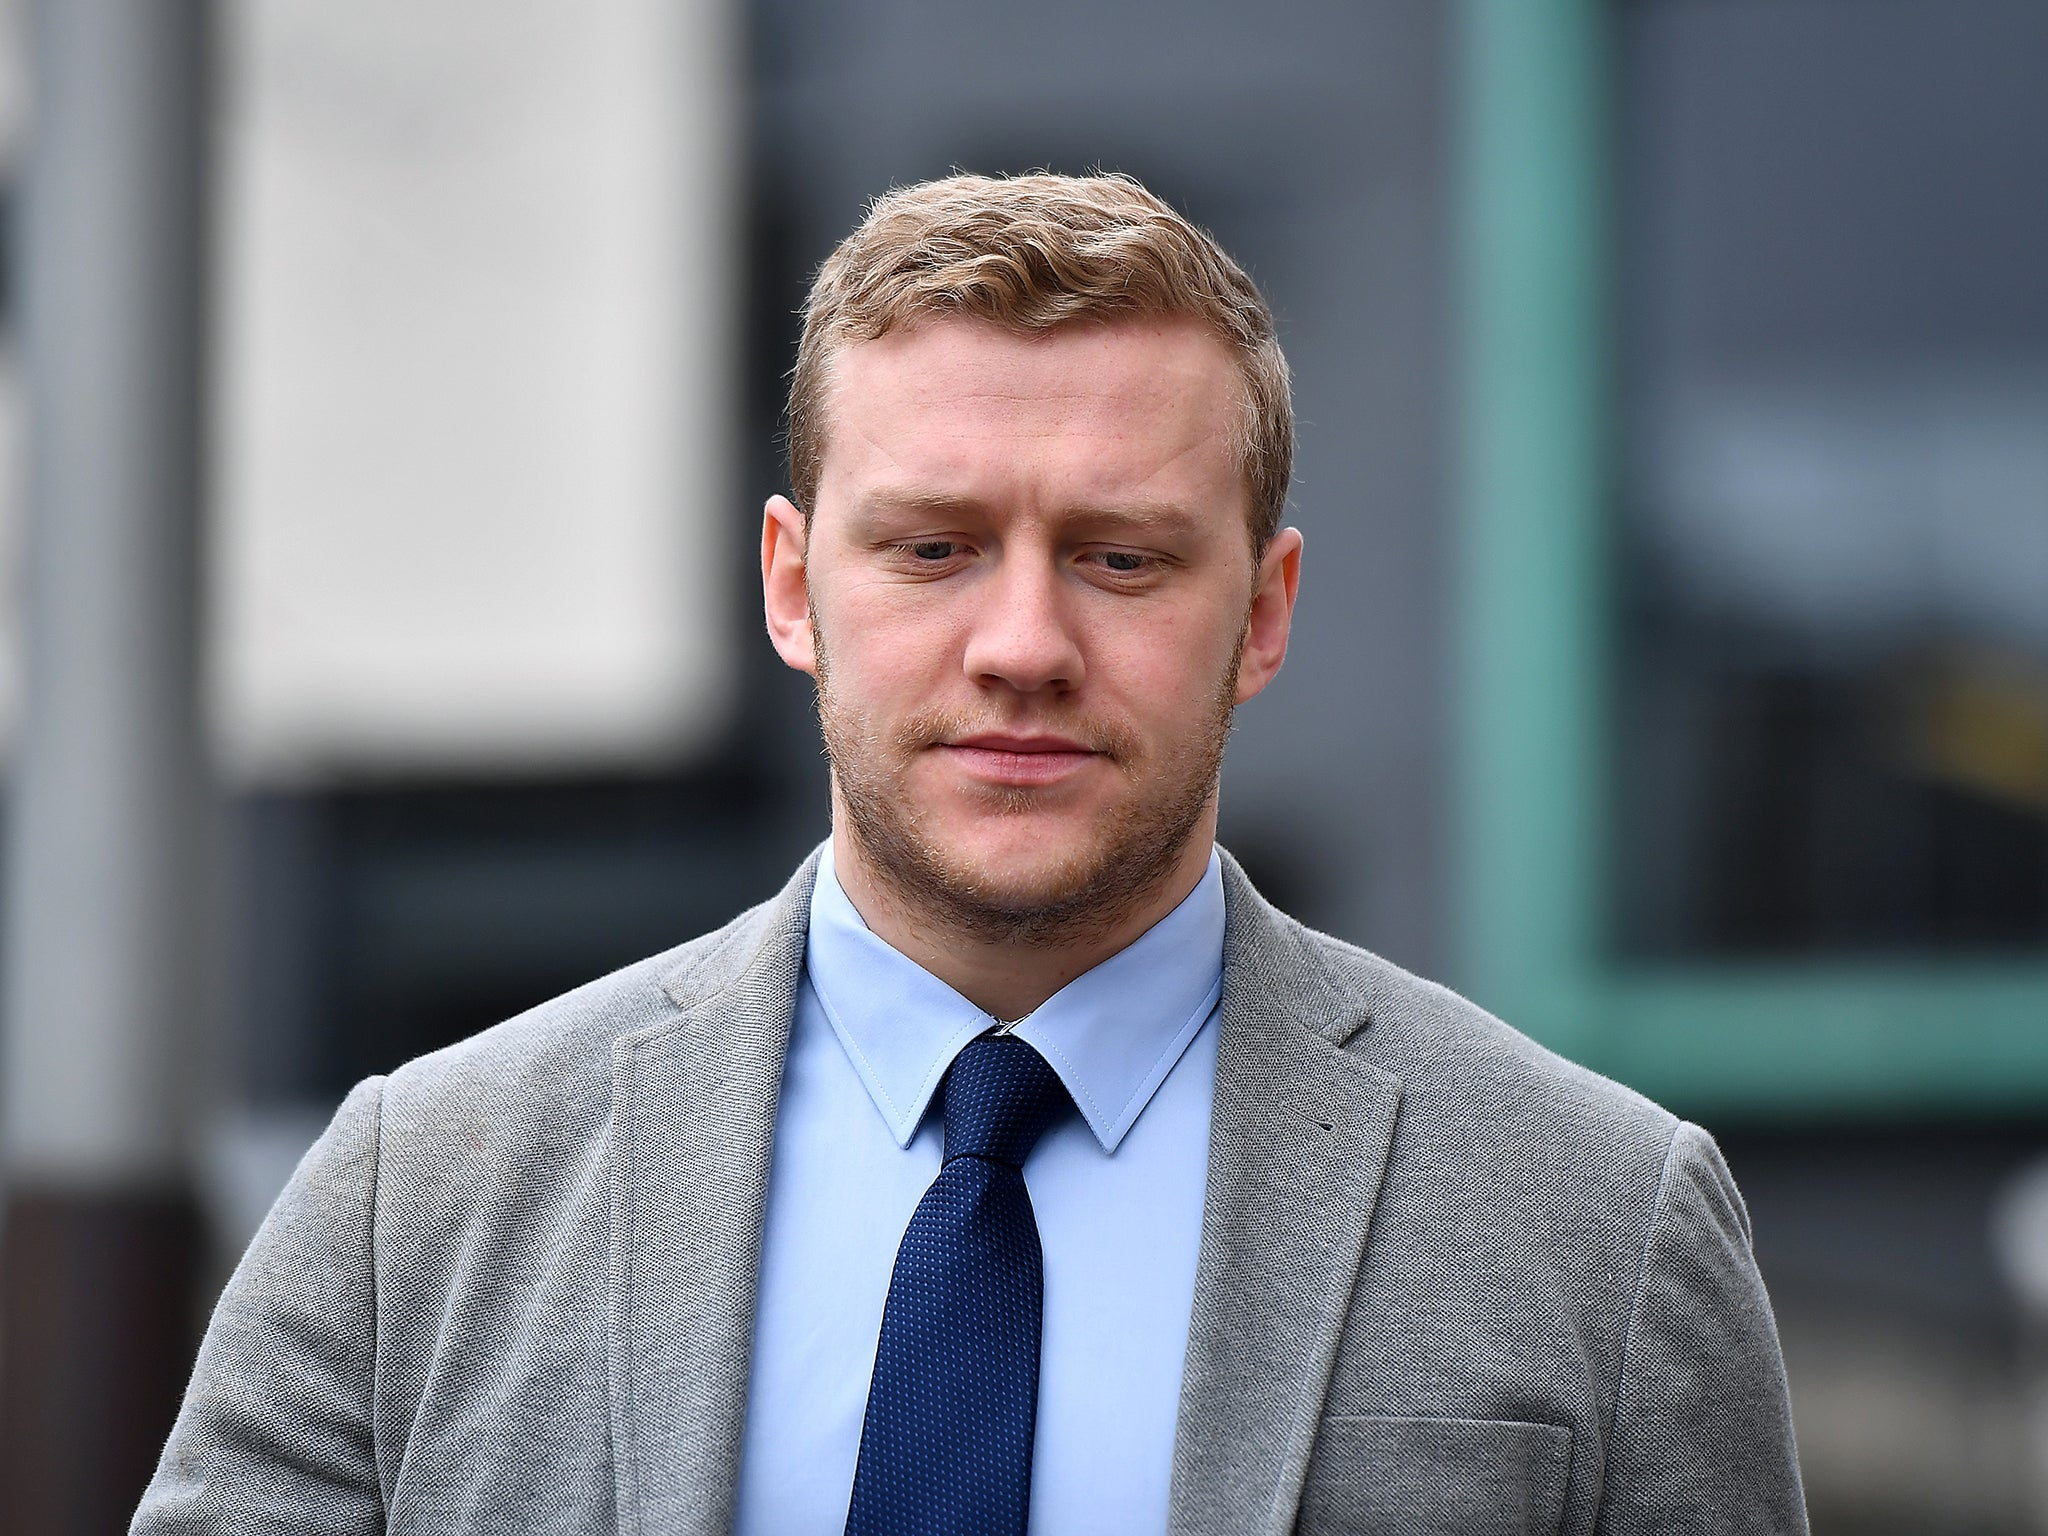 Cleared ex-Ireland and Ulster rugby player looks to retrieve legal costs after rape trial